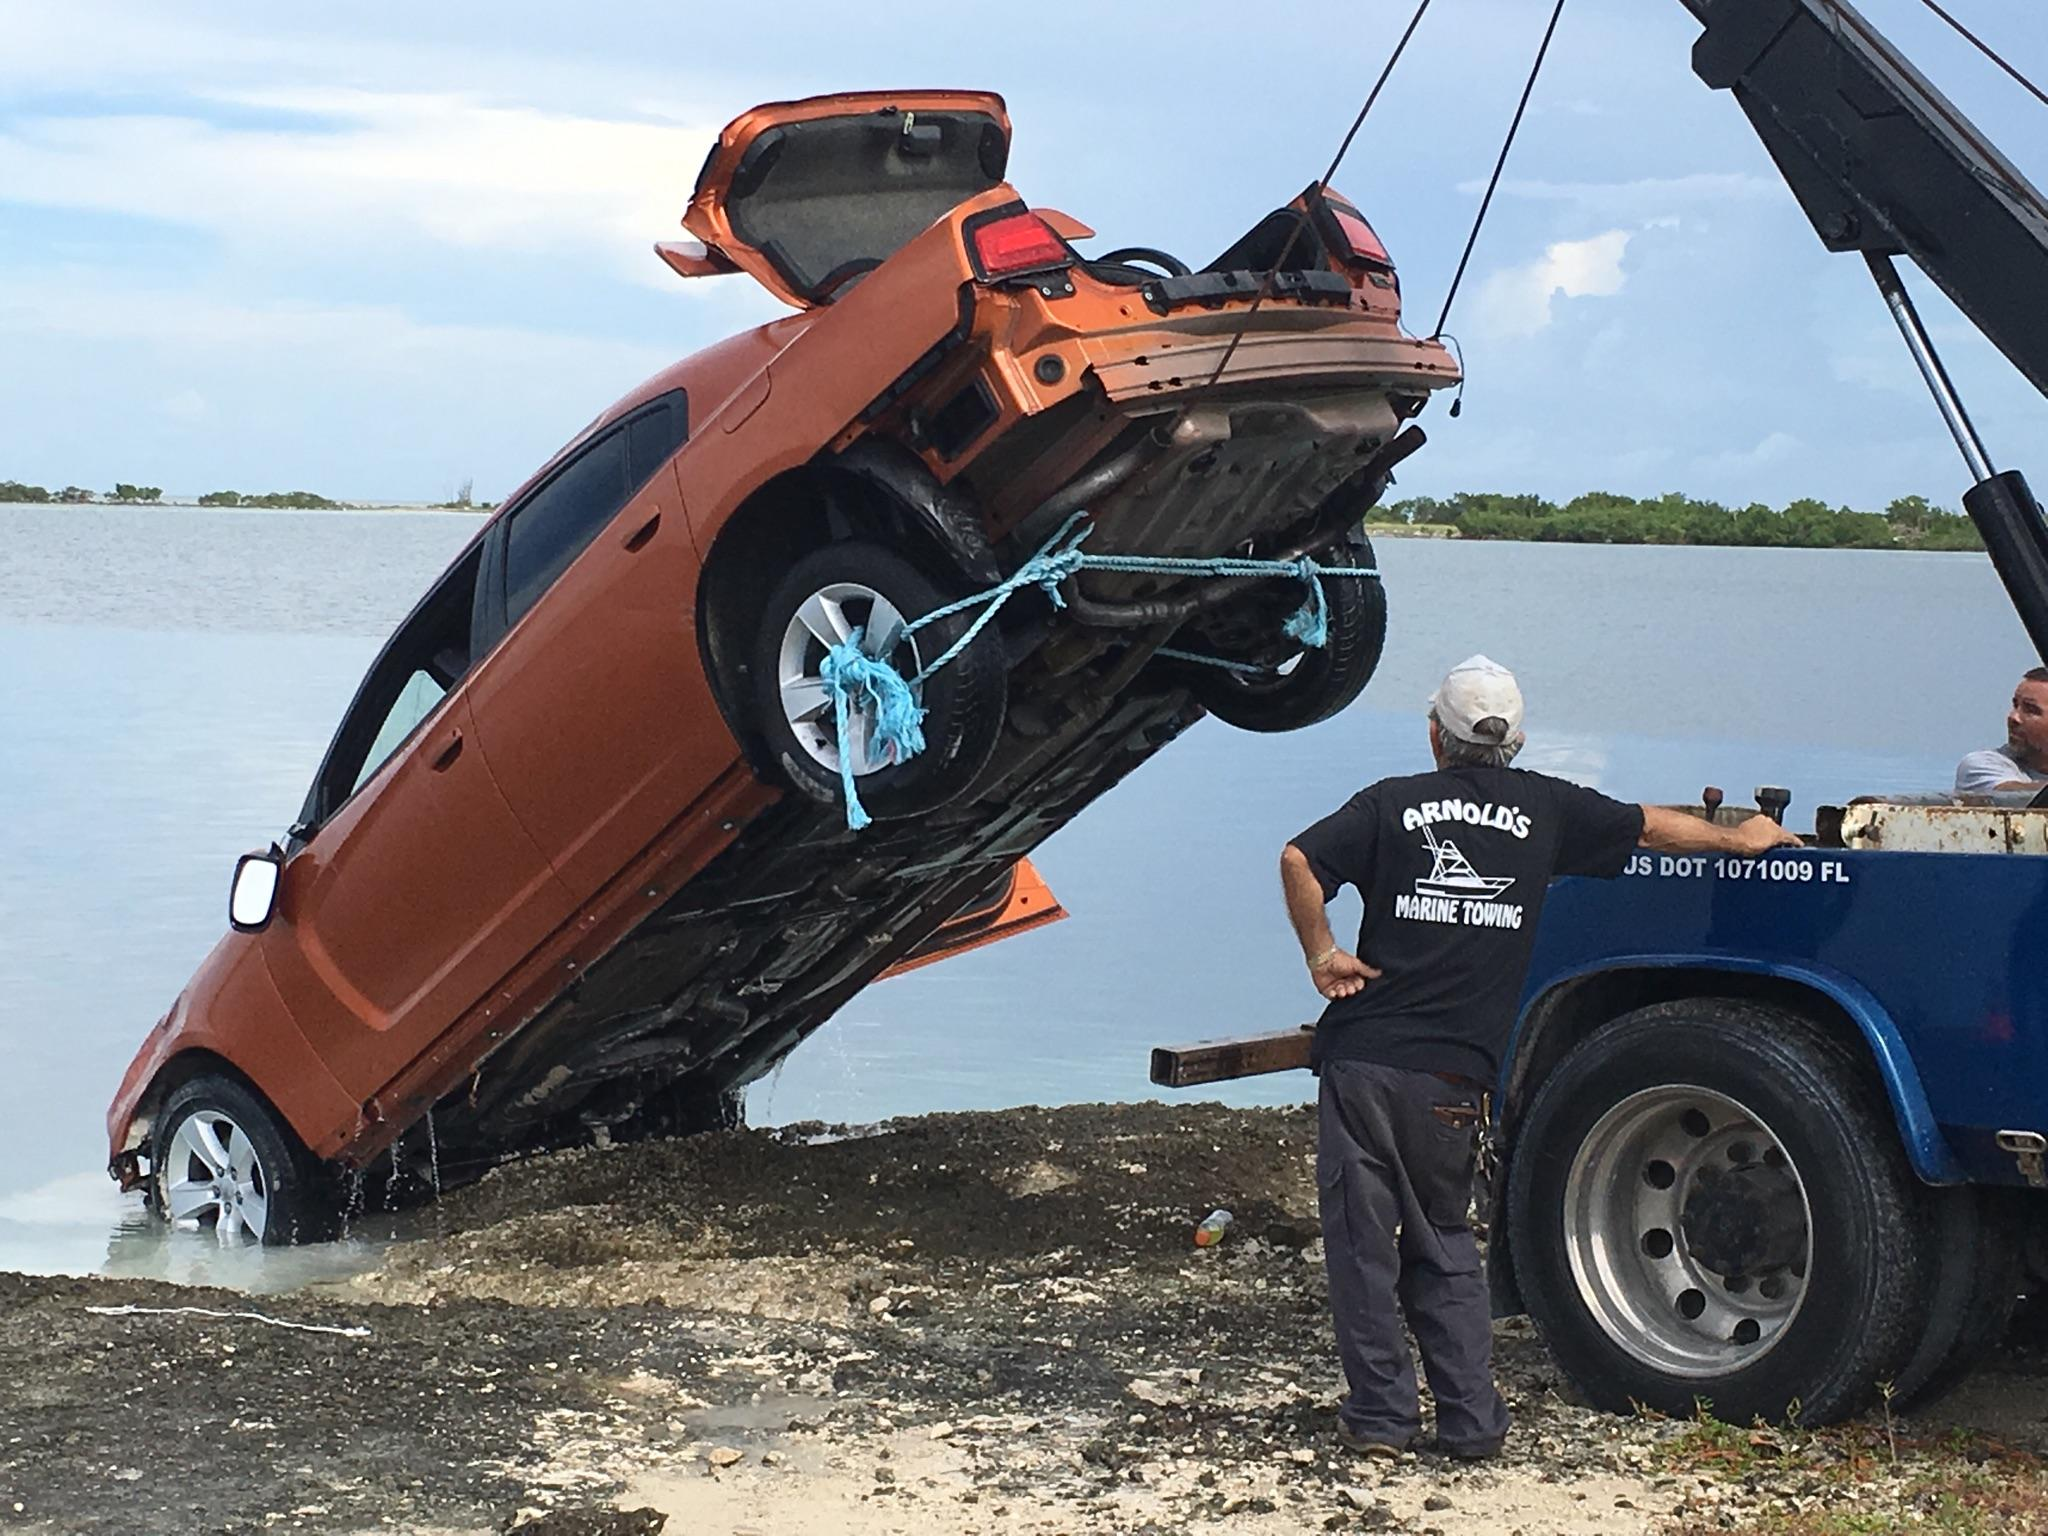 Key West The Newspaper Stolen Car Pulled From Water Rockland Key - Stolen car